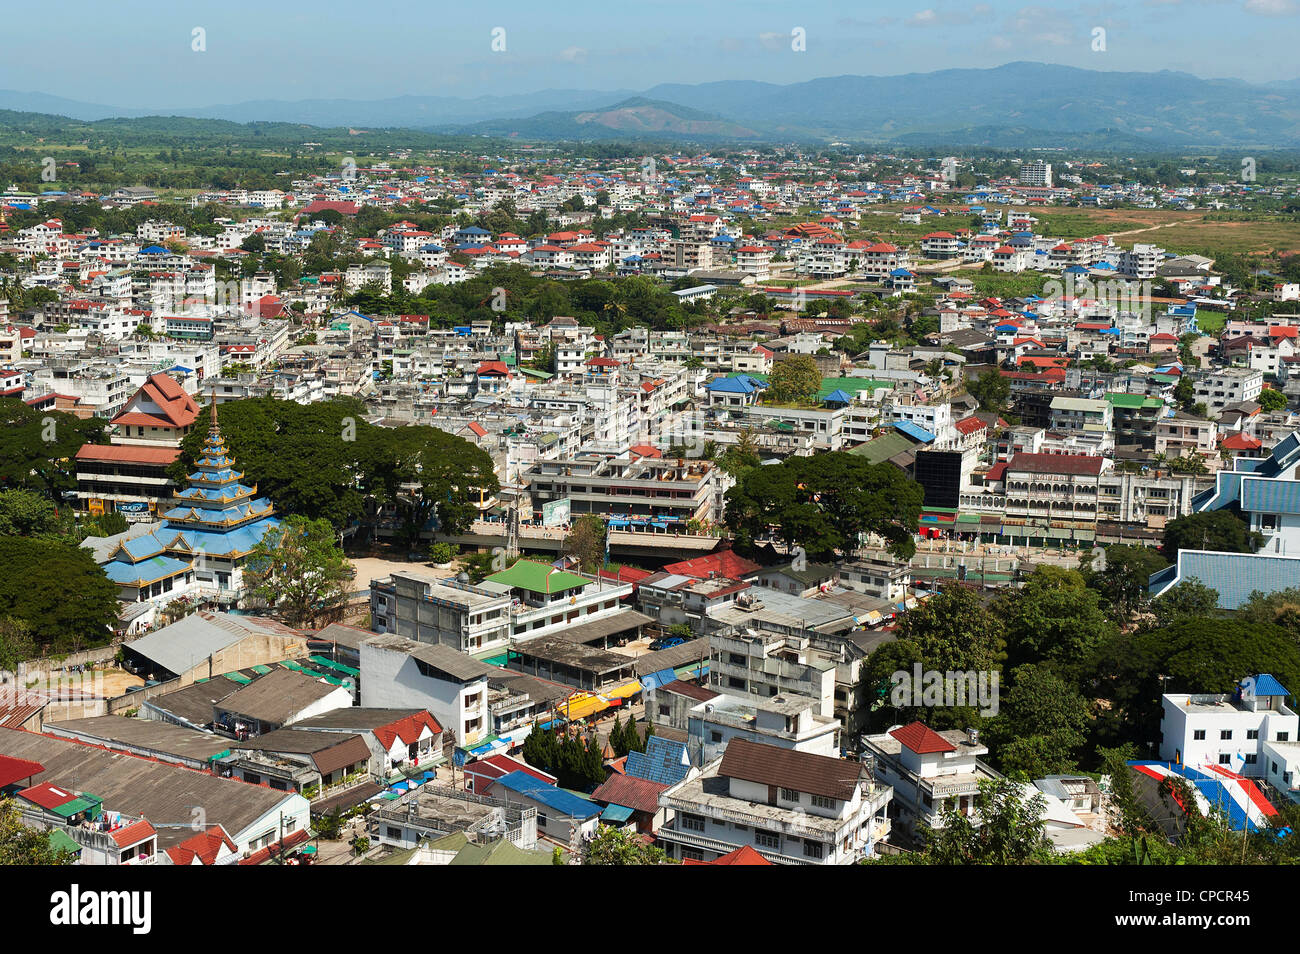 Elk208-5121 Thailand, Mae Sai, town from above - Stock Image